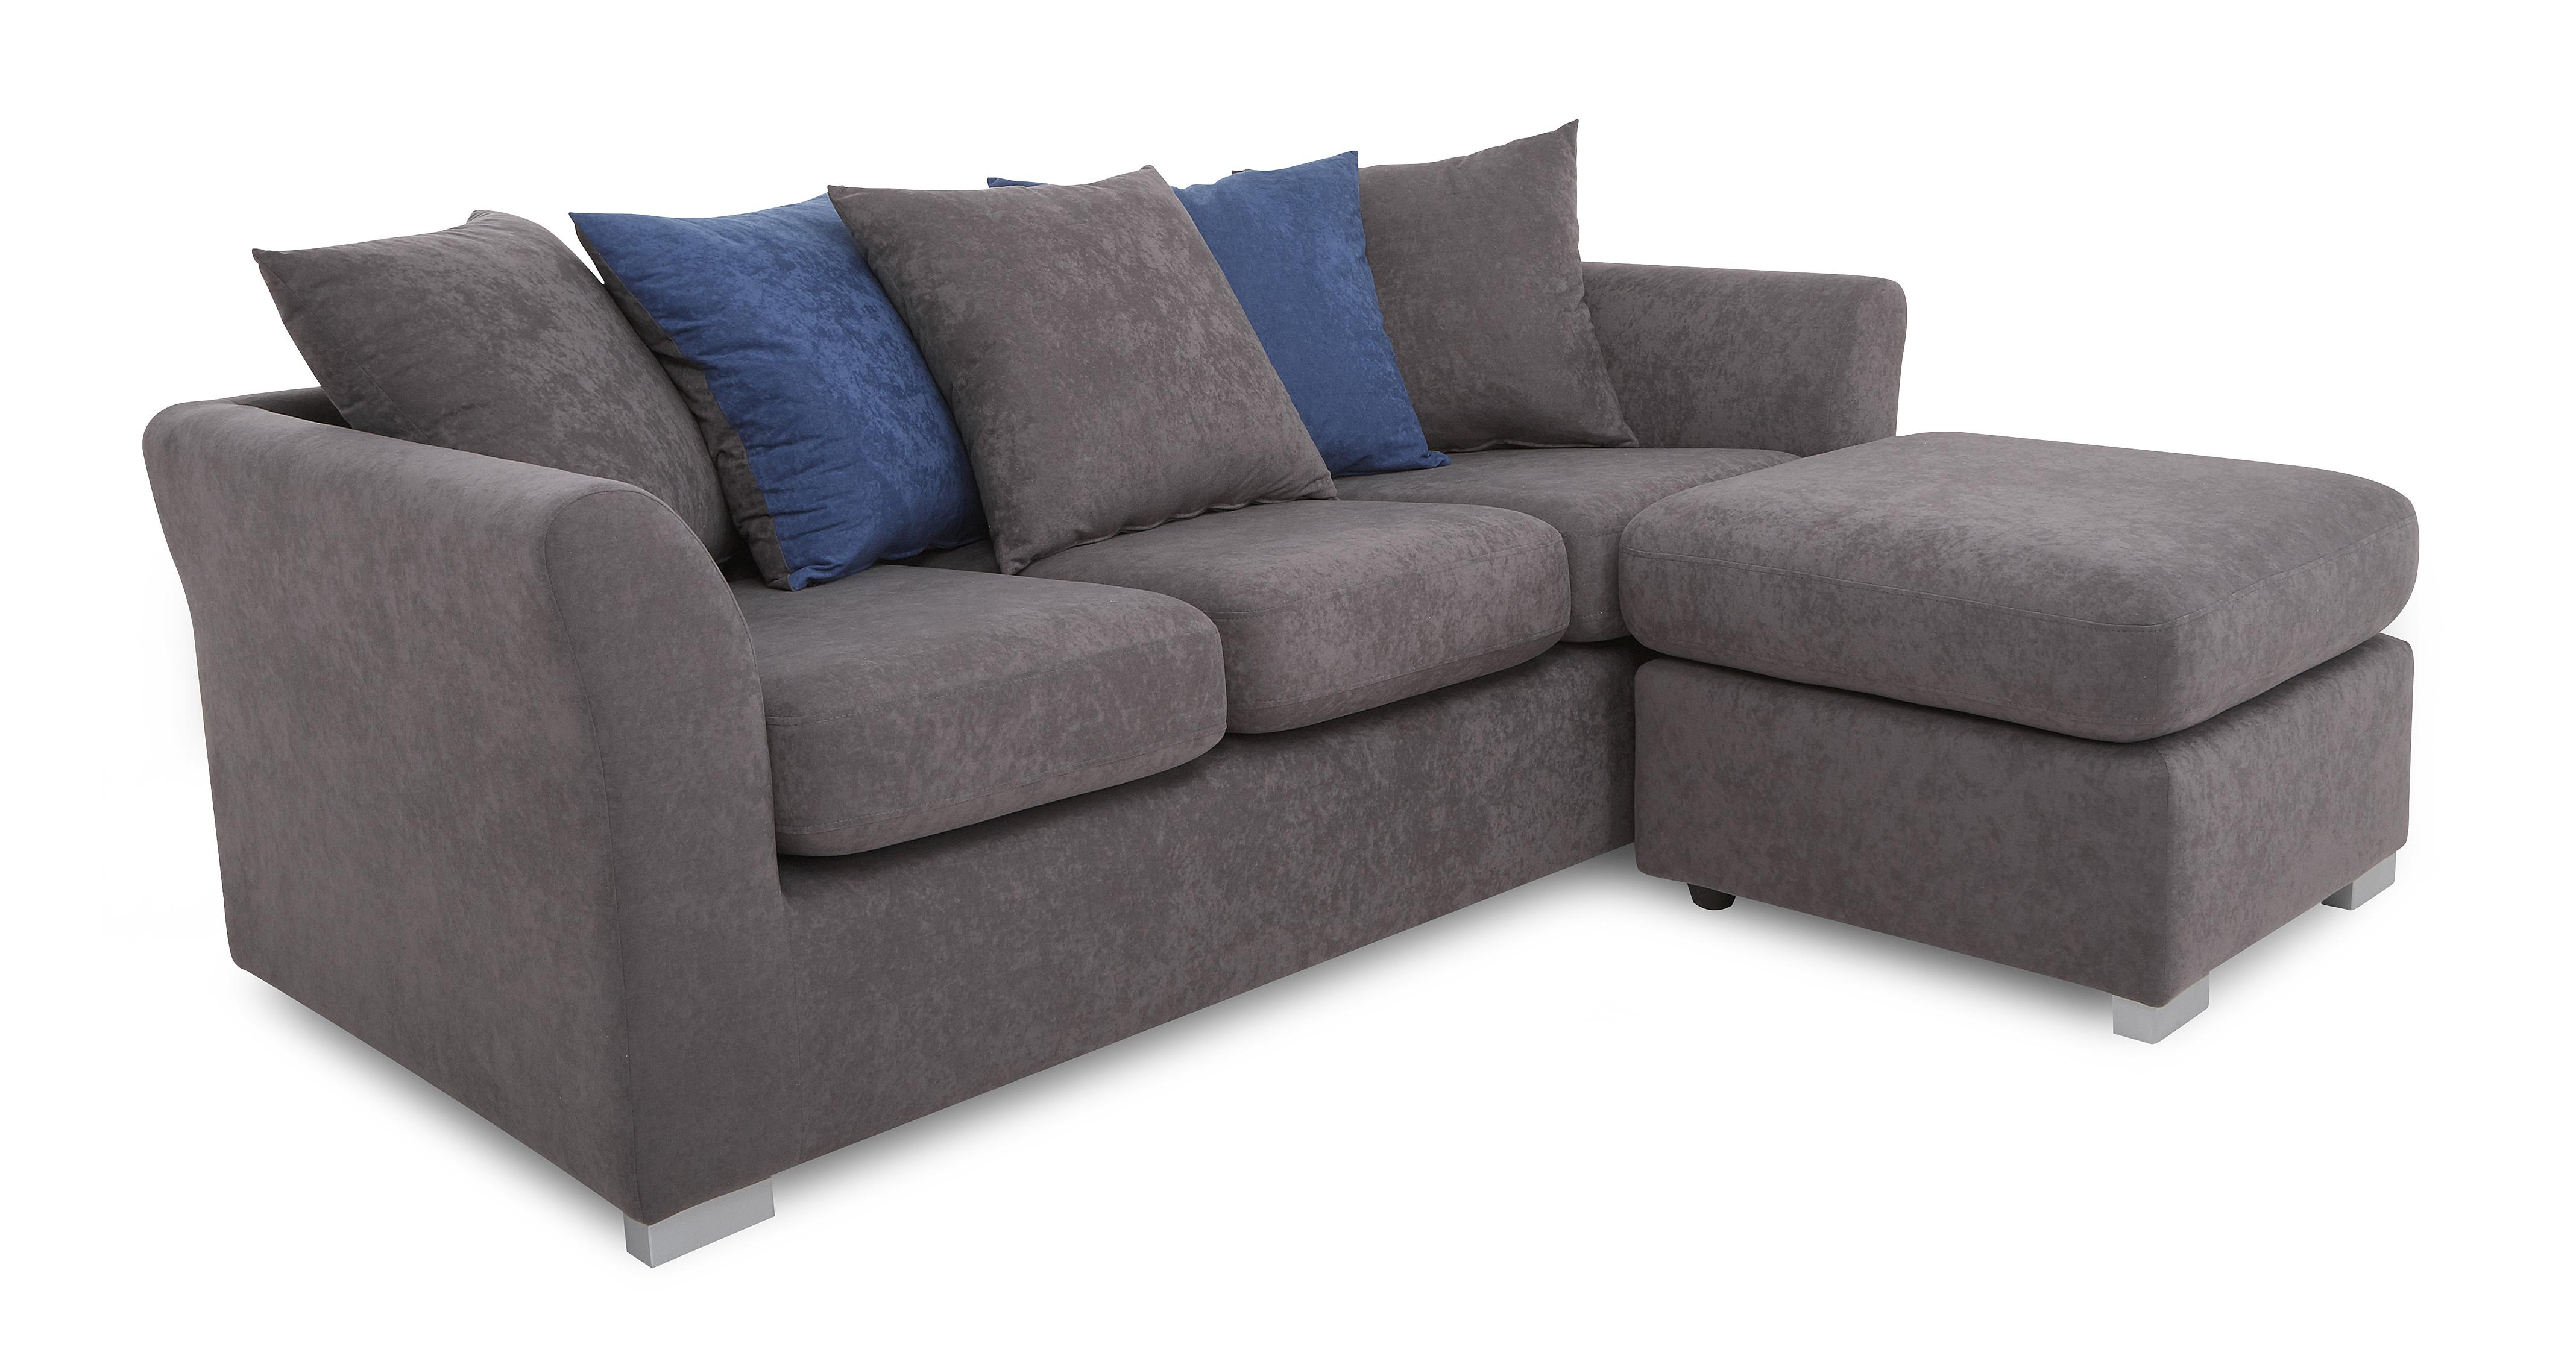 sofas direct from factory uk black leather loveseat sofa dfs studio fabric corner left or right hand facing ebay